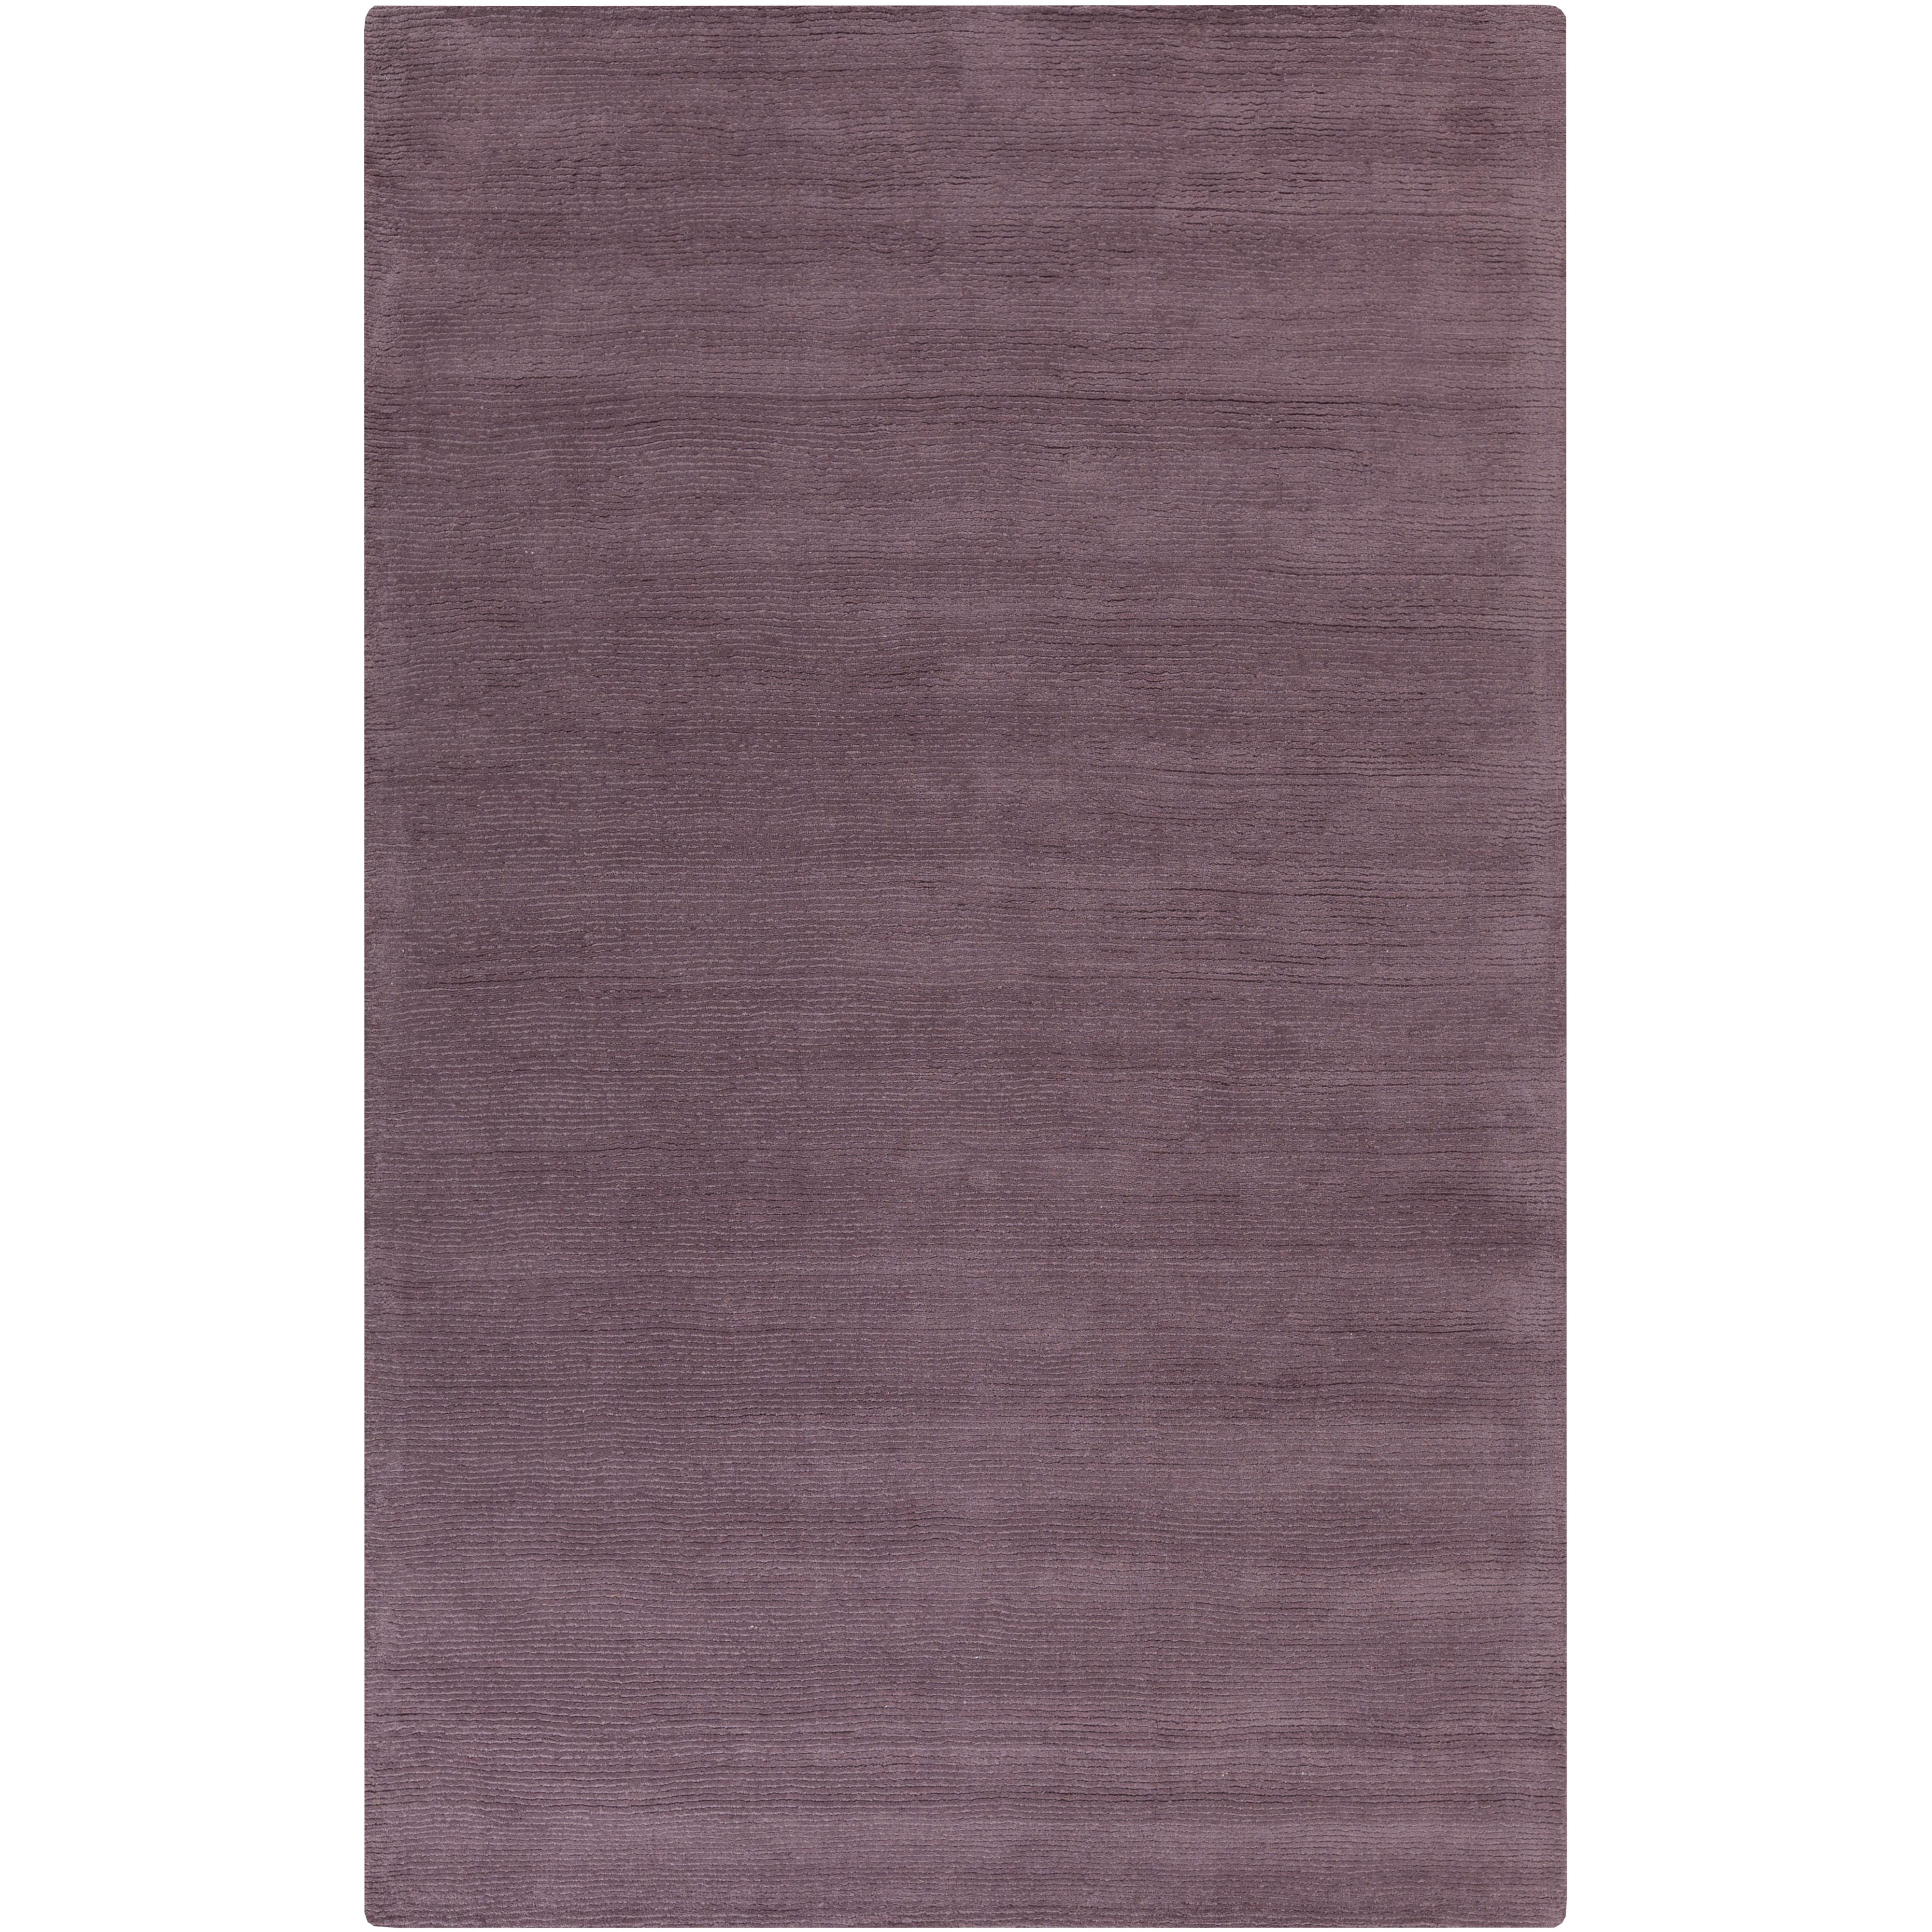 Surya Mystique 6' x 9' - Item Number: M5329-69